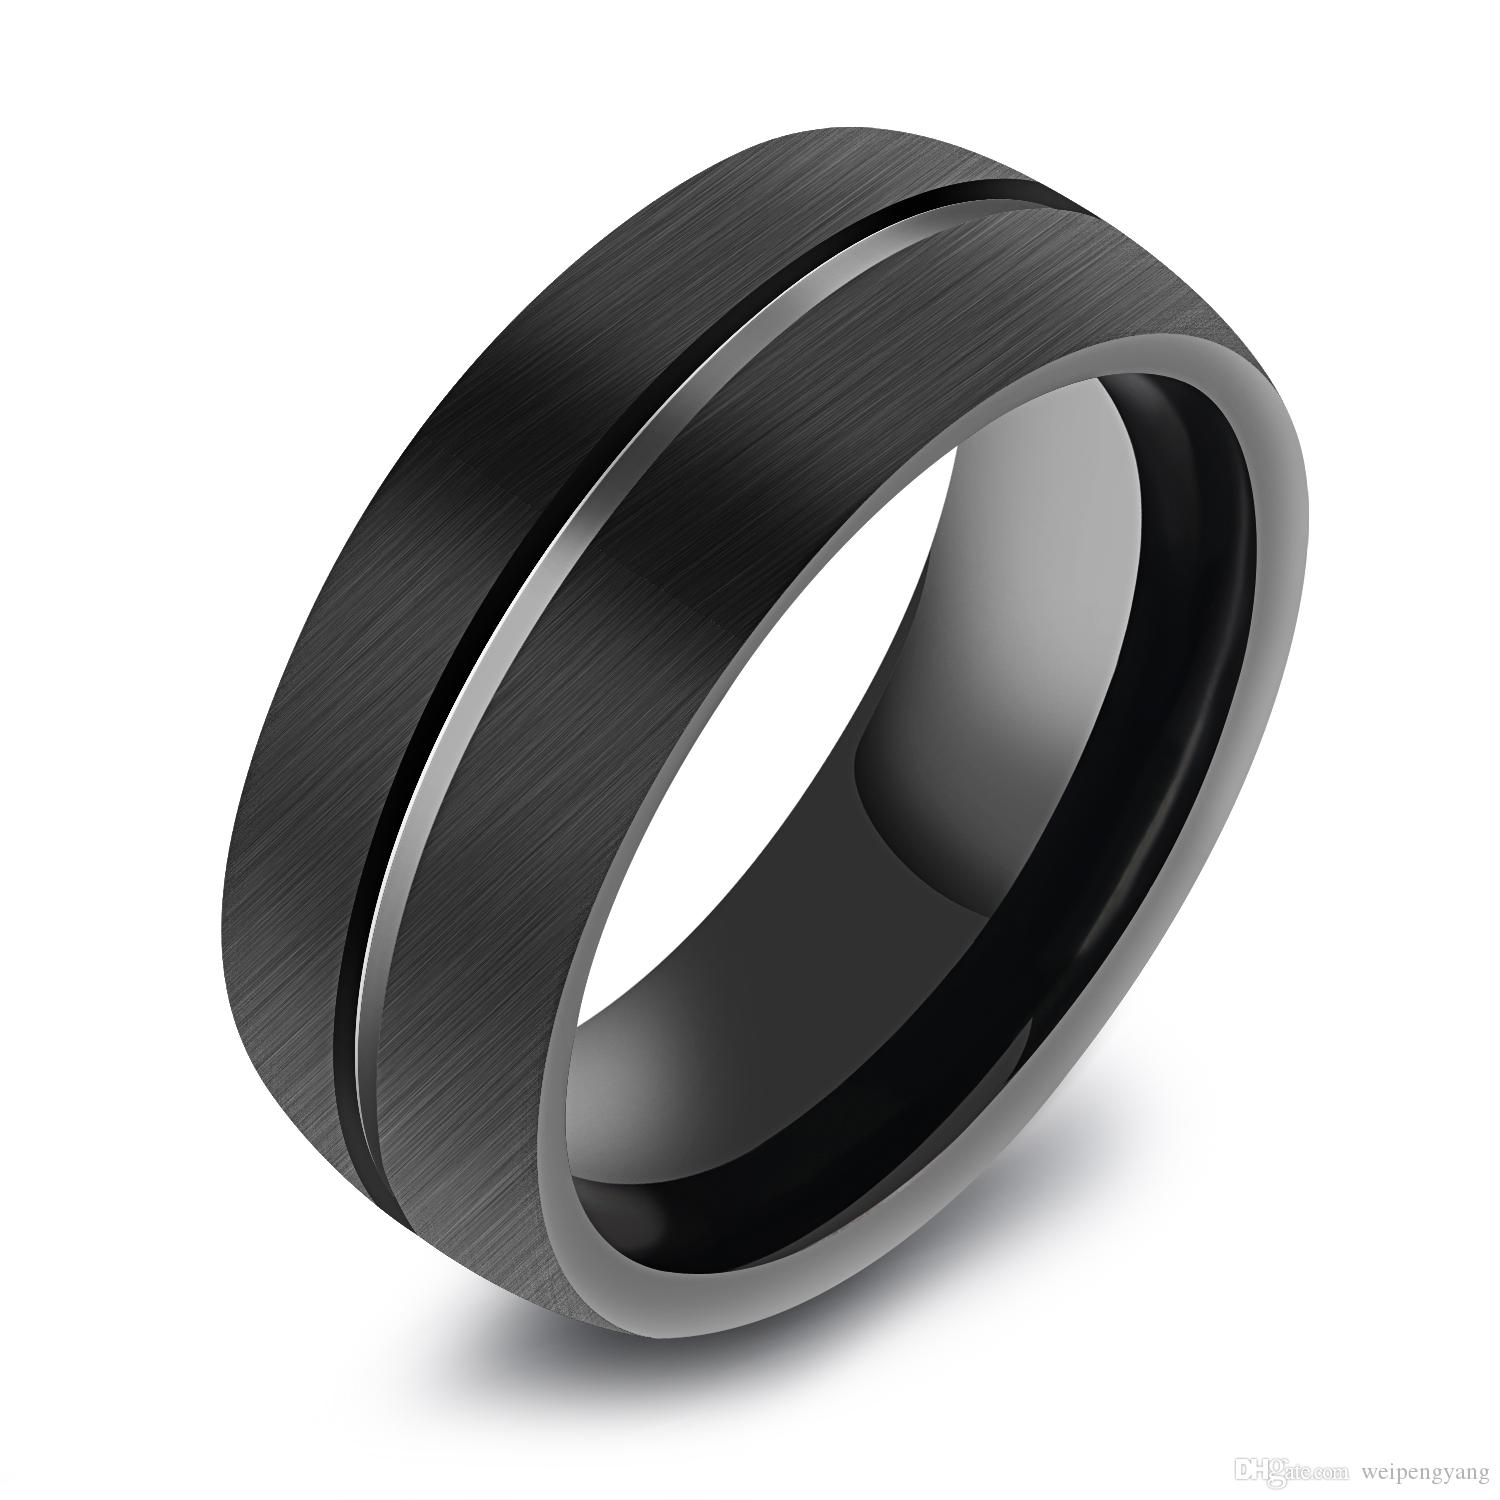 2019 8mm Mens Black Tungsten Ring Domed Surface Carbide Brushed Silver Wedding Band From Weipengyang 4691 Dhgate: Black Metal Wedding Bands At Reisefeber.org